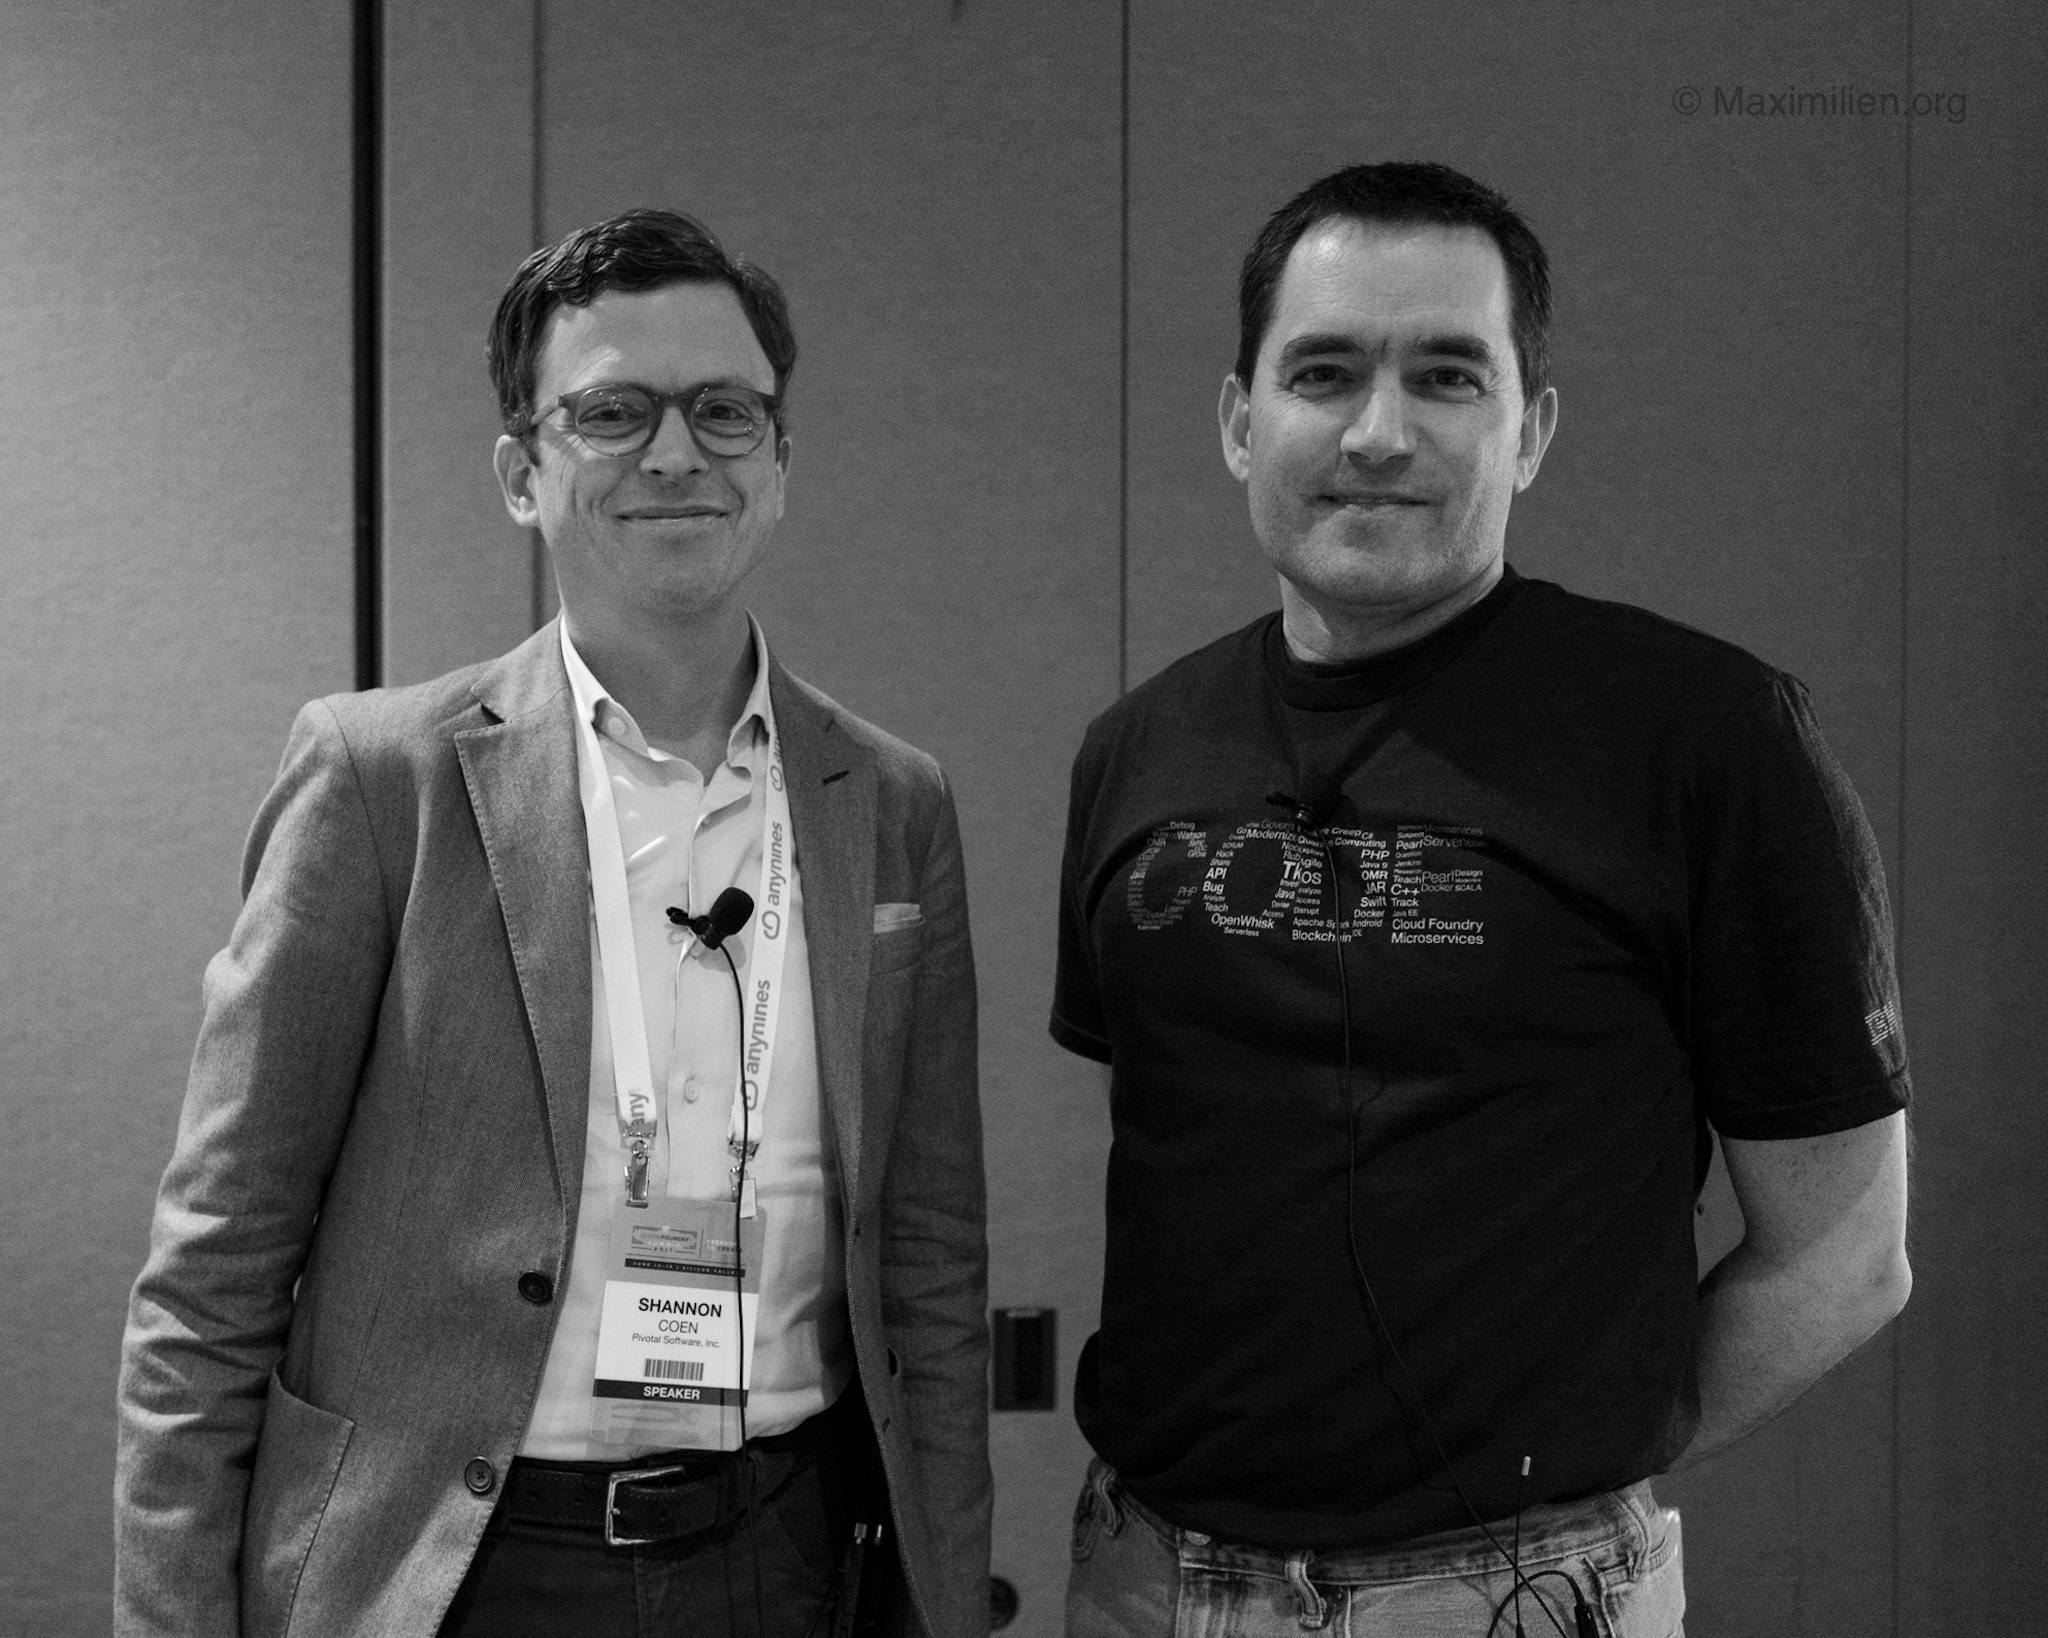 Shannon Coen (Pivotal) and Doug Davis (IBM), two of the leaders for the Open Service Broker APIs extraction